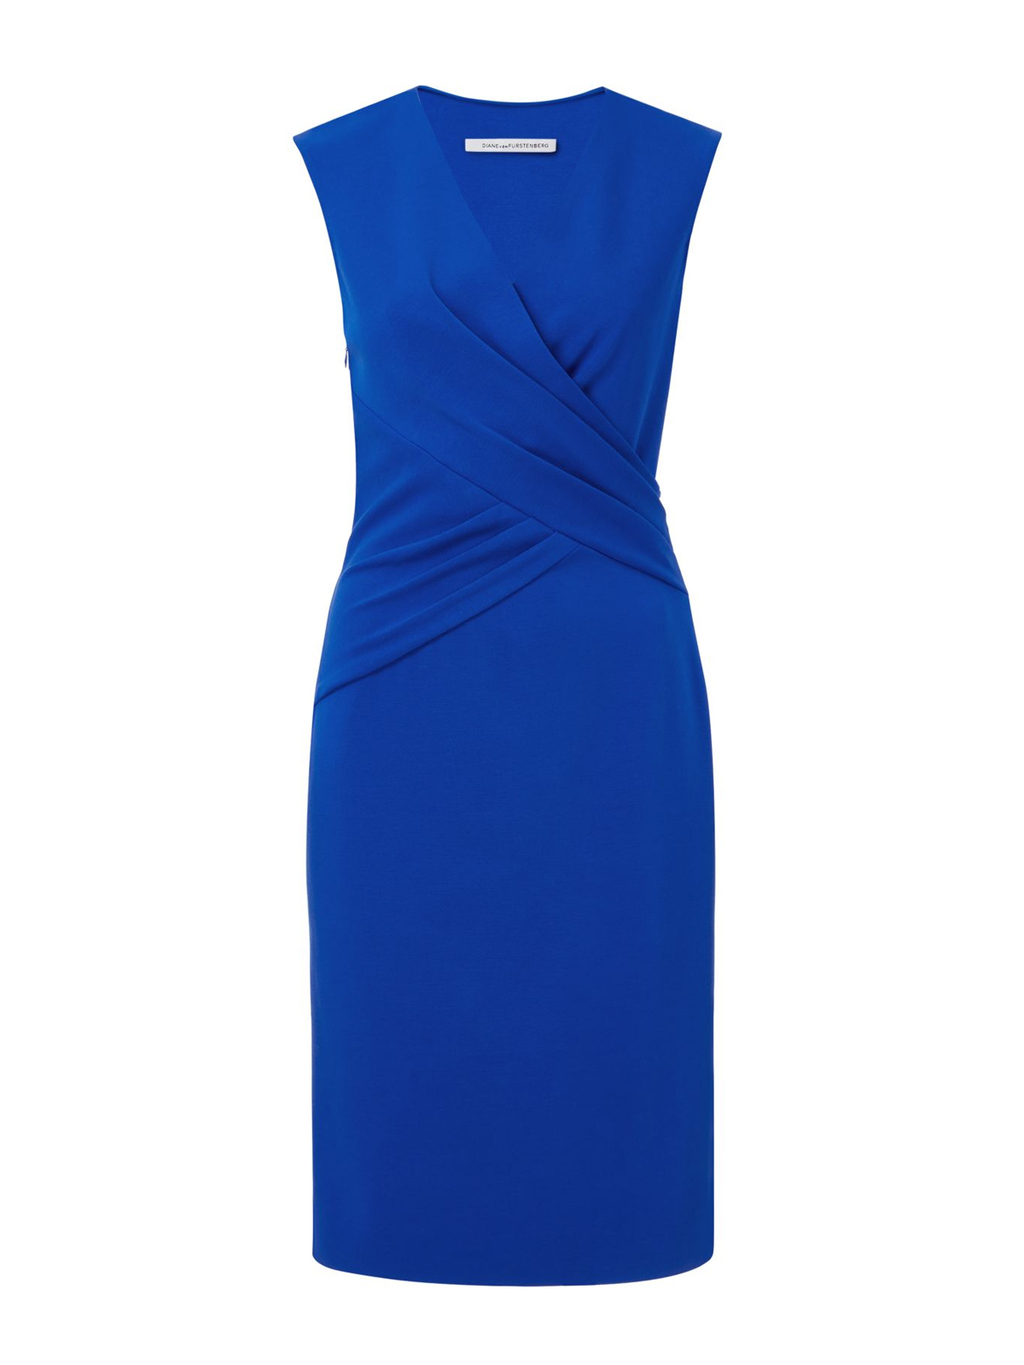 Leora Dress - style: faux wrap/wrap; neckline: v-neck; pattern: plain; sleeve style: sleeveless; predominant colour: royal blue; occasions: evening; length: on the knee; fit: body skimming; fibres: viscose/rayon - stretch; sleeve length: sleeveless; pattern type: fabric; texture group: jersey - stretchy/drapey; season: s/s 2016; wardrobe: event